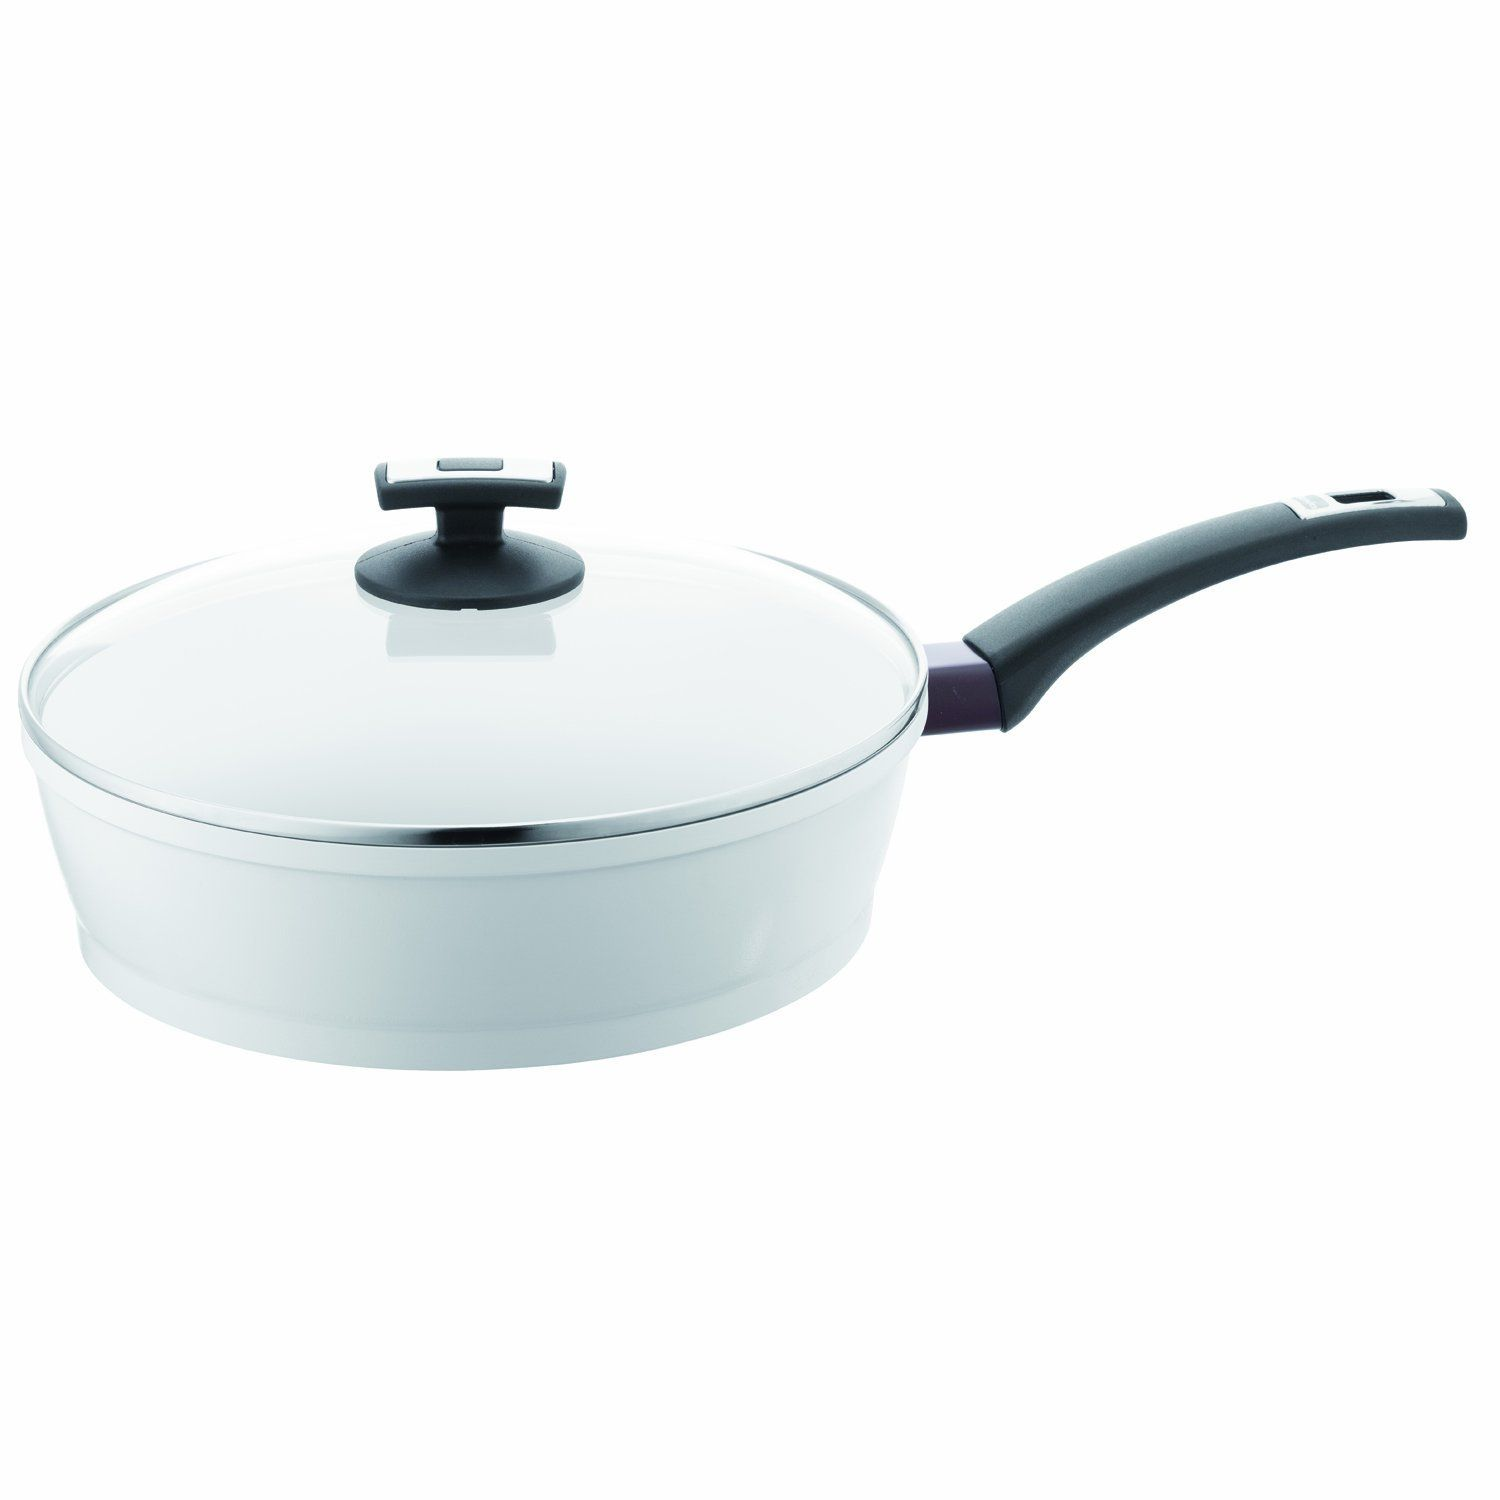 Berndes Ecofit Pearl Ceramic Coated Cast Aluminum 11 1 2 Inch Covered Saute Pan Find Out More Details By Clicking The Imag Ceramic Coating Ceramics Saute Pan